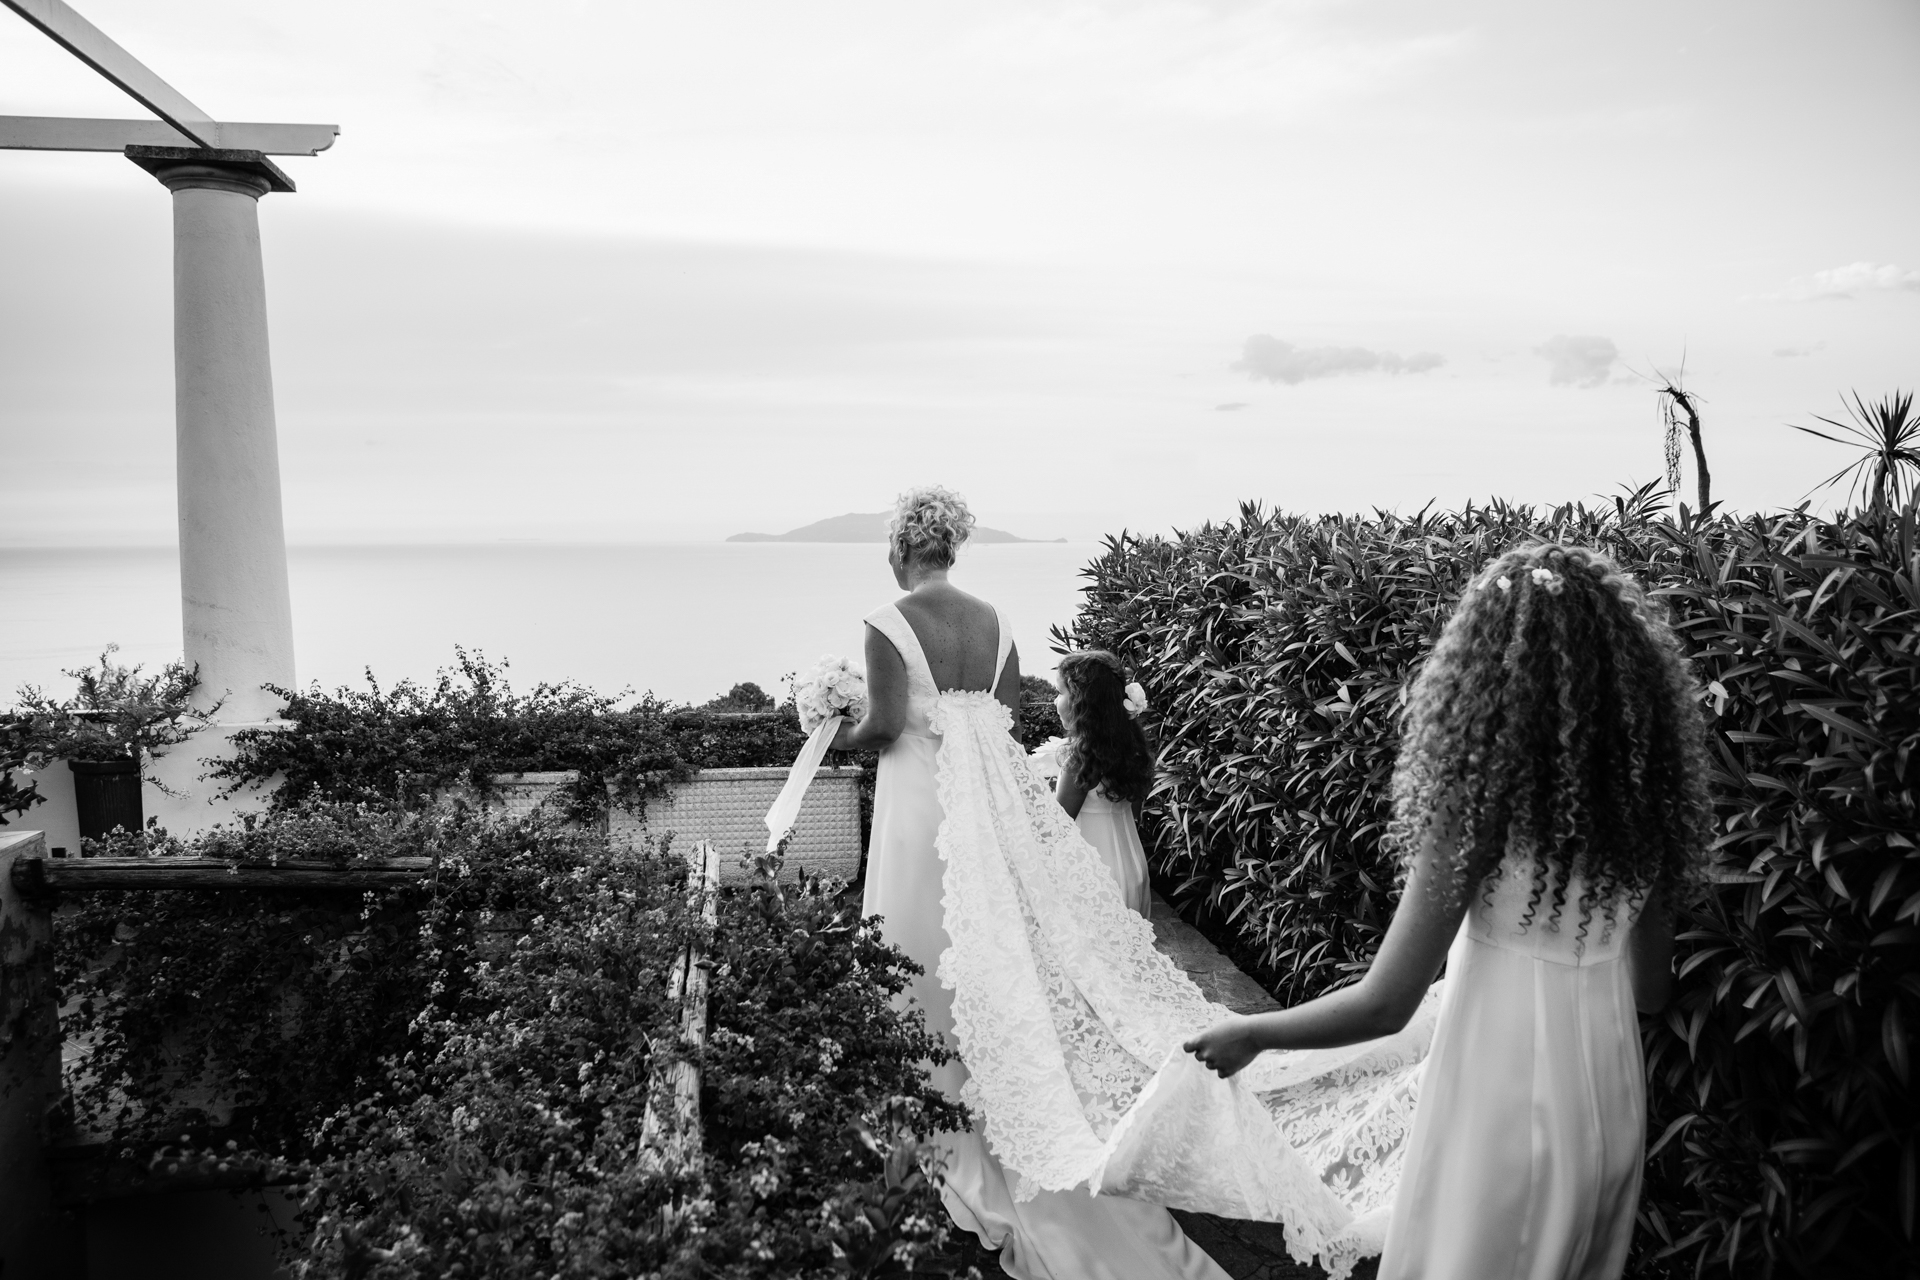 Capri Island - Italy Wedding Pictures | The bride's daughters accompany her down the aisle